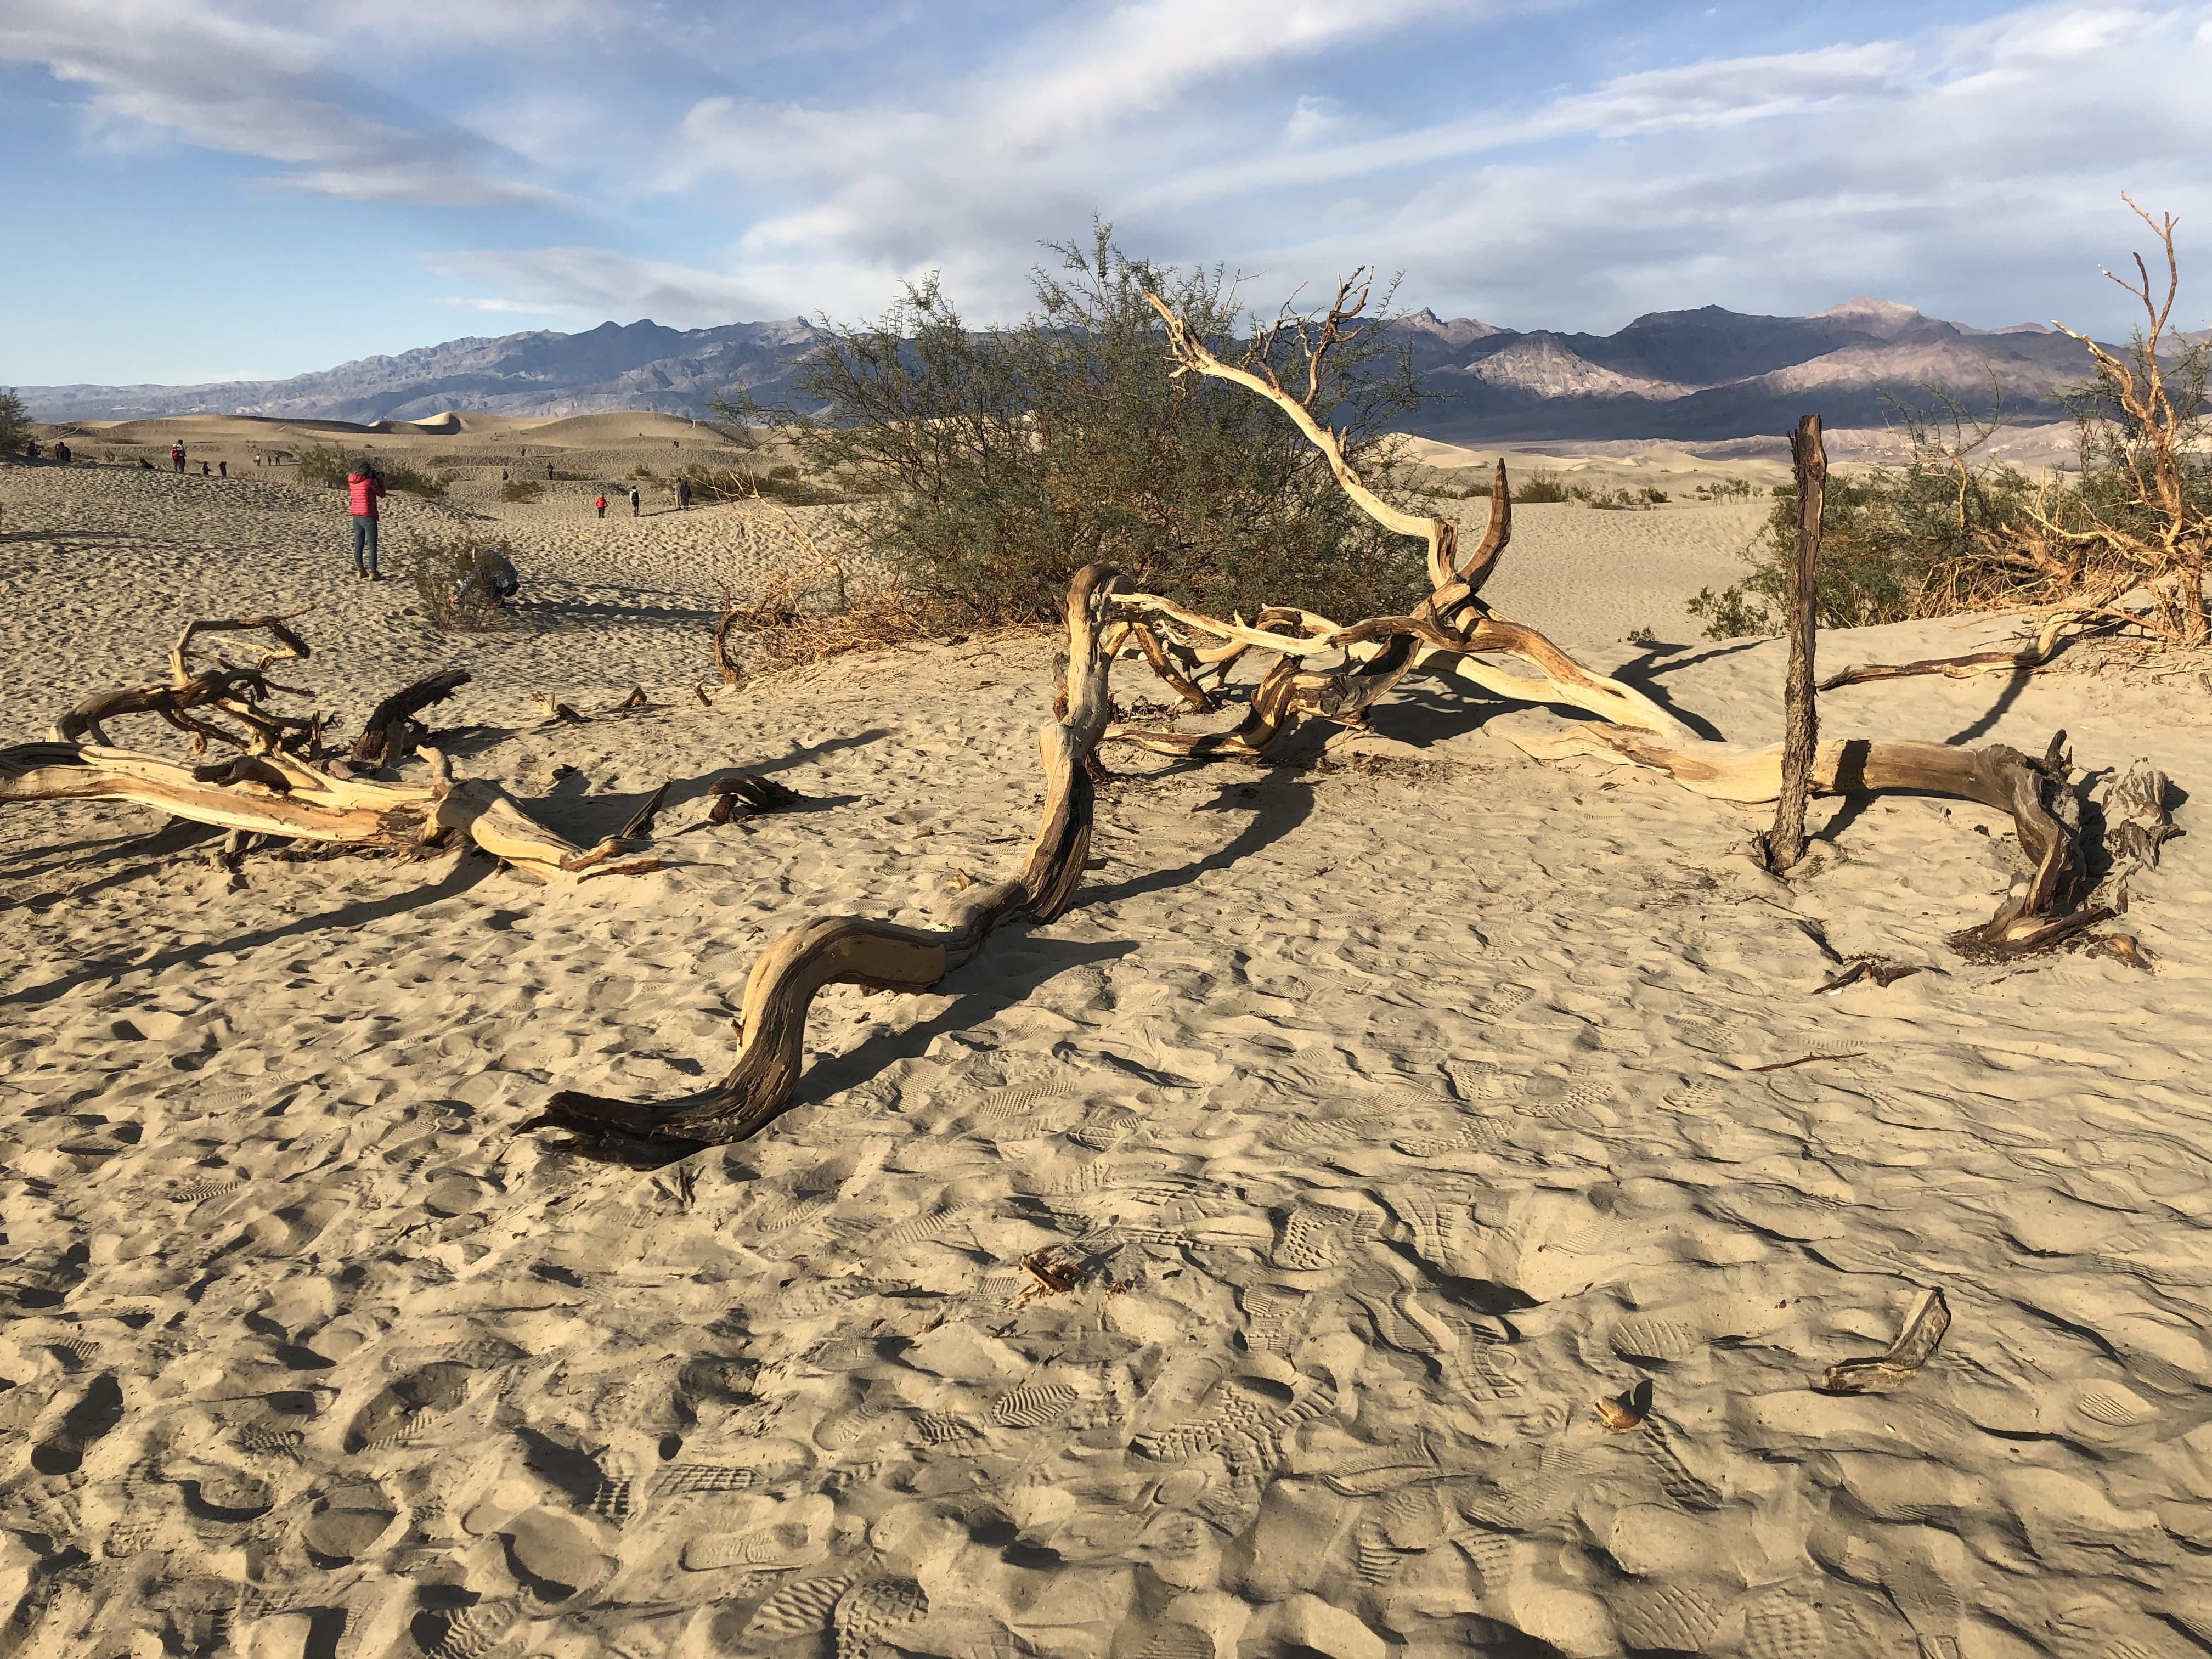 Plants with long tap roots like mesquite flourish along with the fridge of the dunes